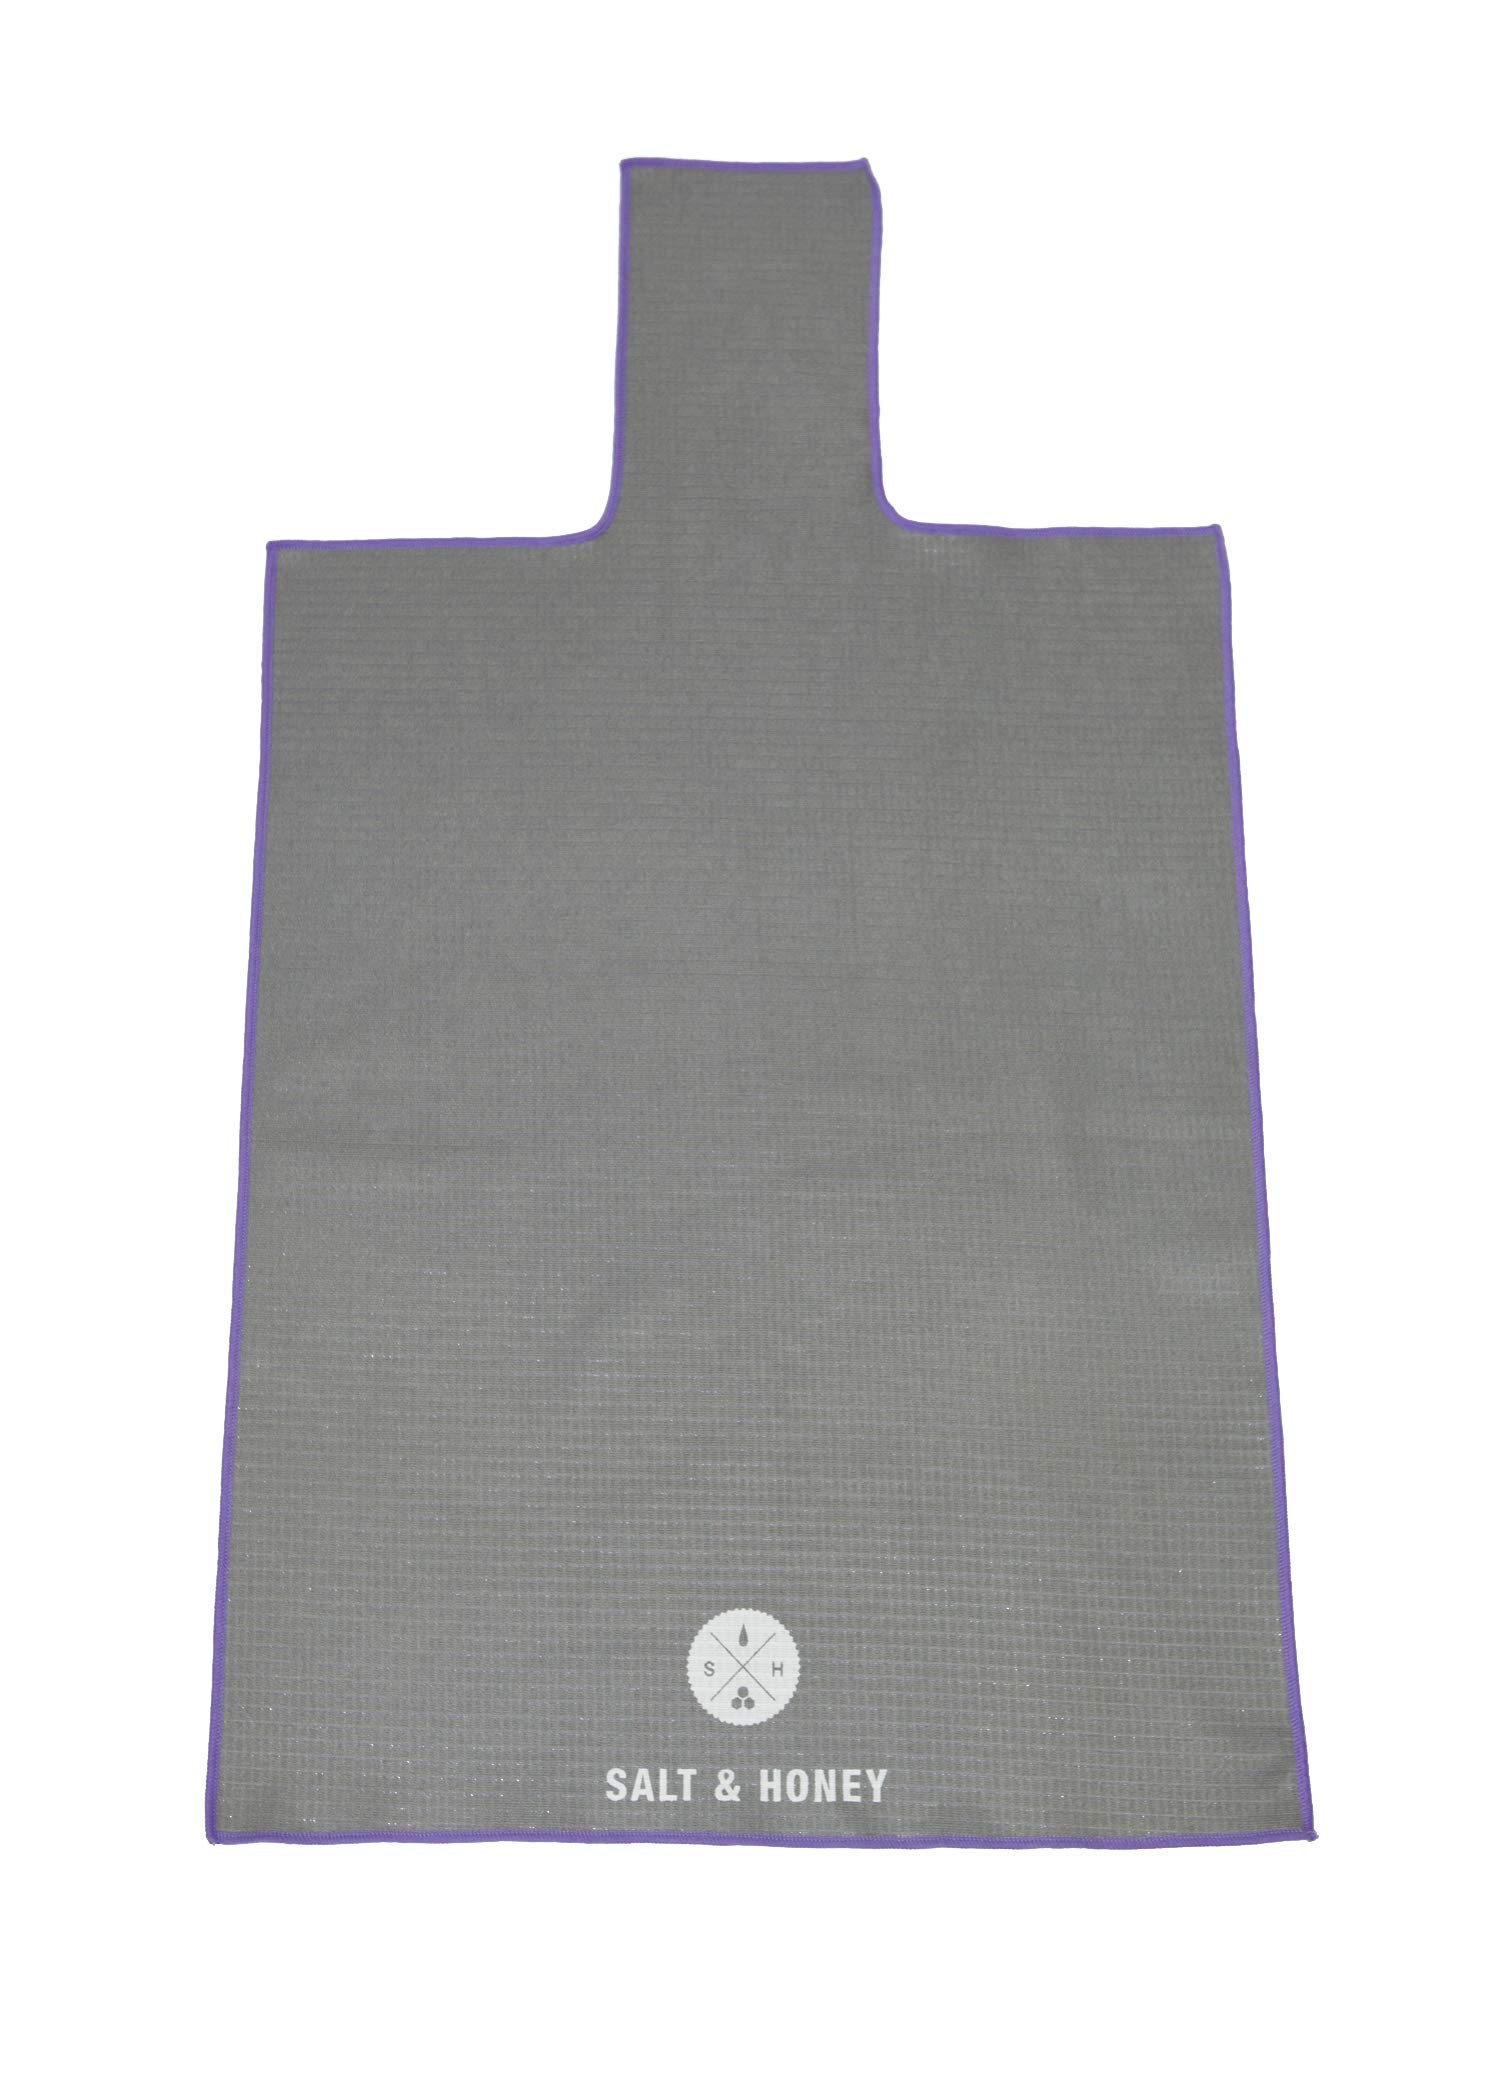 Salt & Honey Non-Slip Pilates Reformer Mat Towel (Gray)